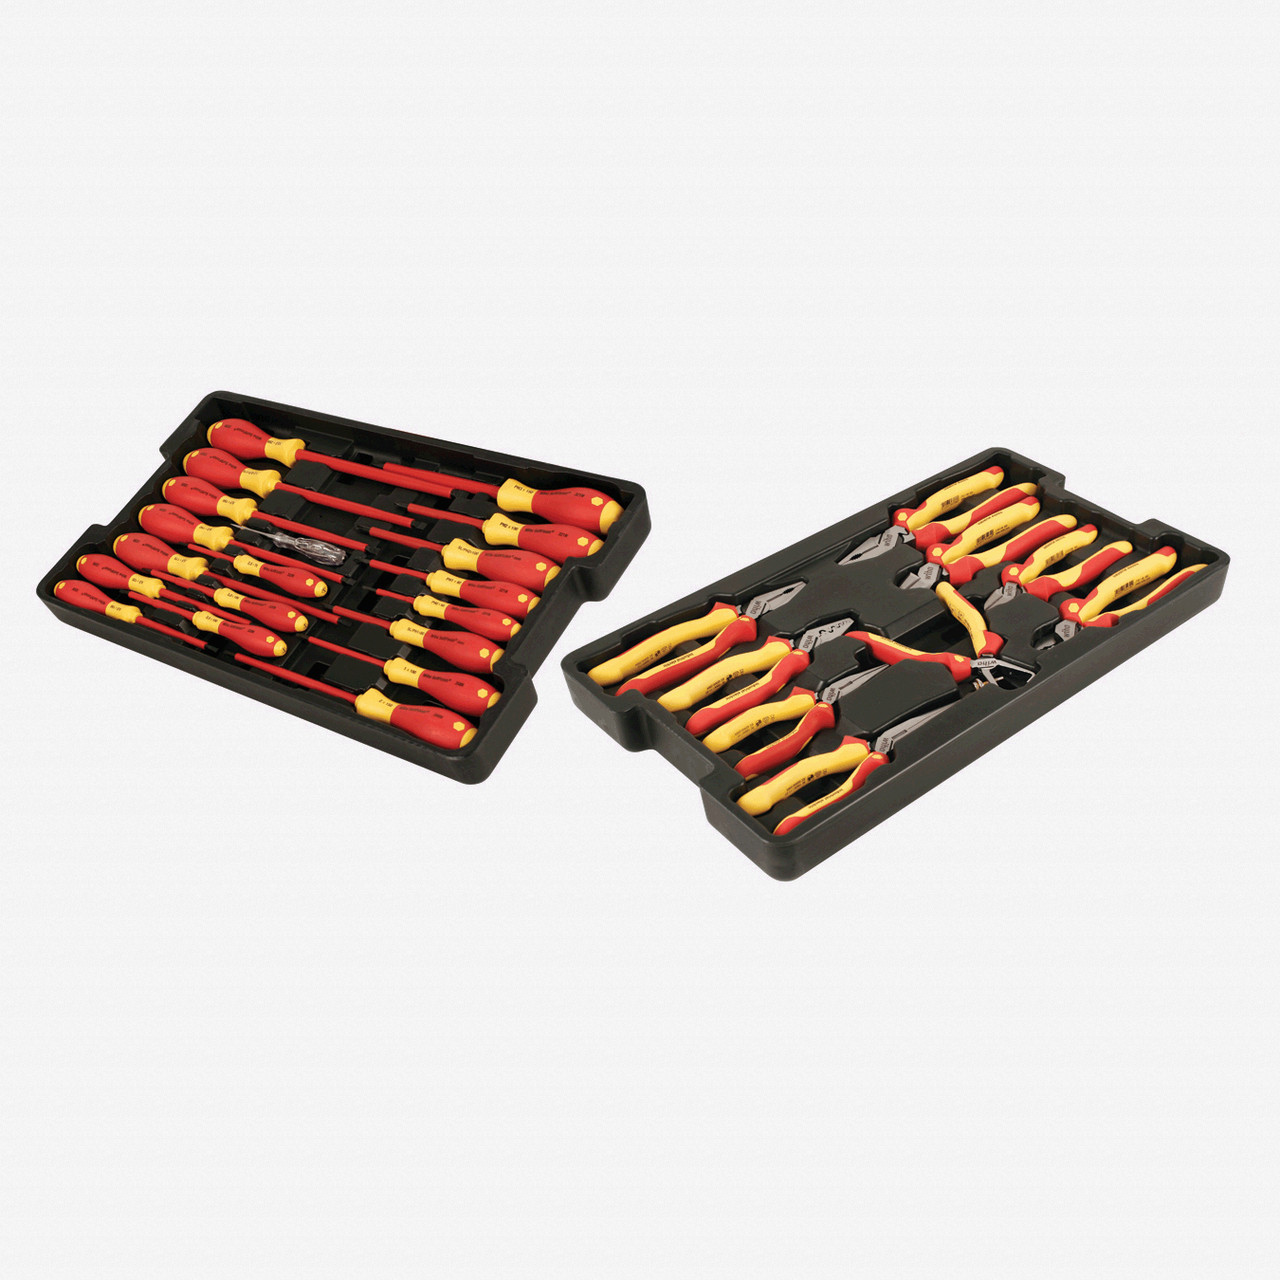 Wiha 32989 28 Piece Insulated Pliers/Cutters/Screwdrivers Tray Set - KC Tool